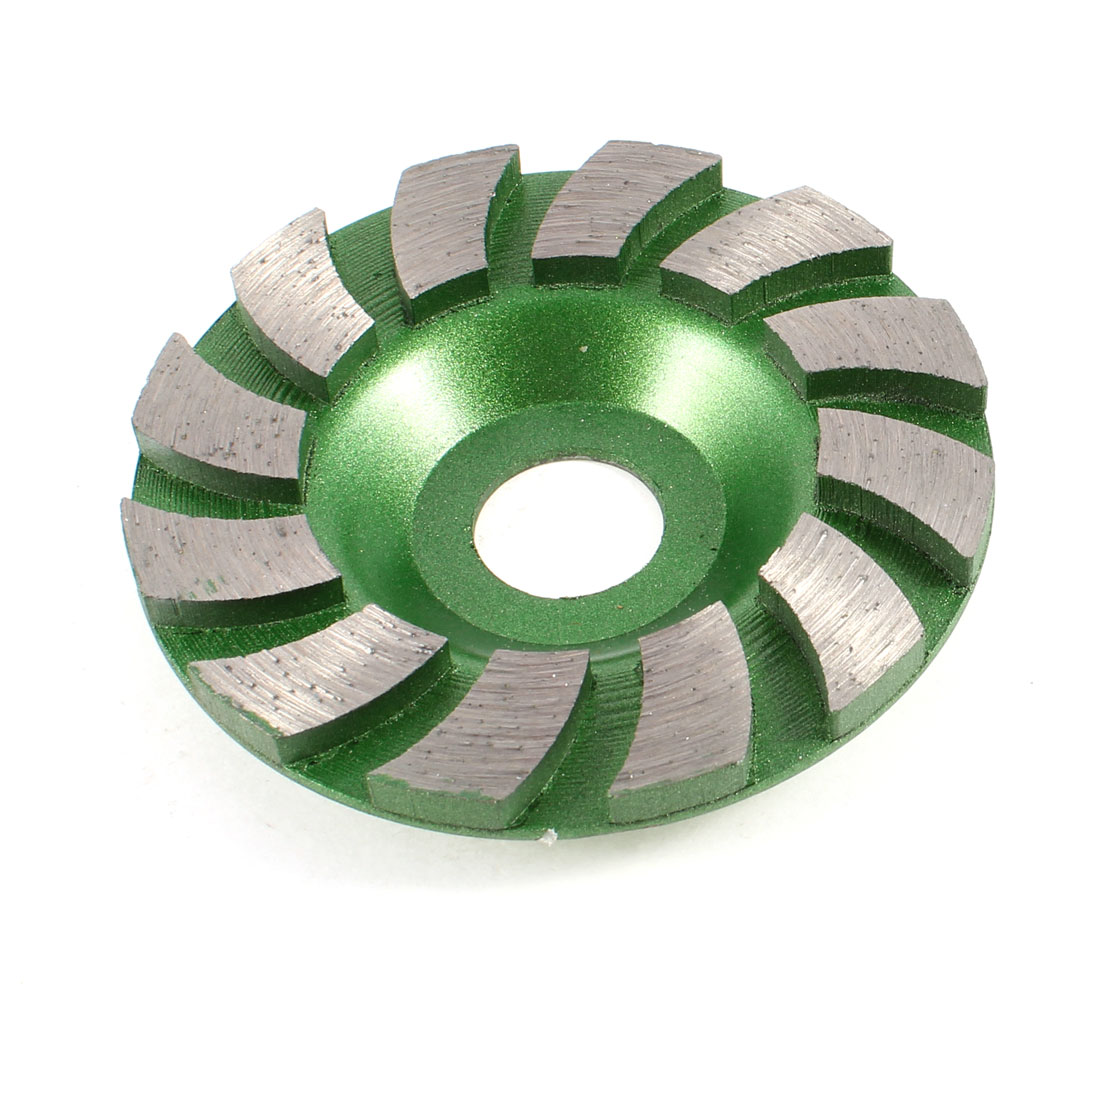 "12 Segments 2cm Mount Hole 3.5"" Diameter Green Turbo Cup Wheel"